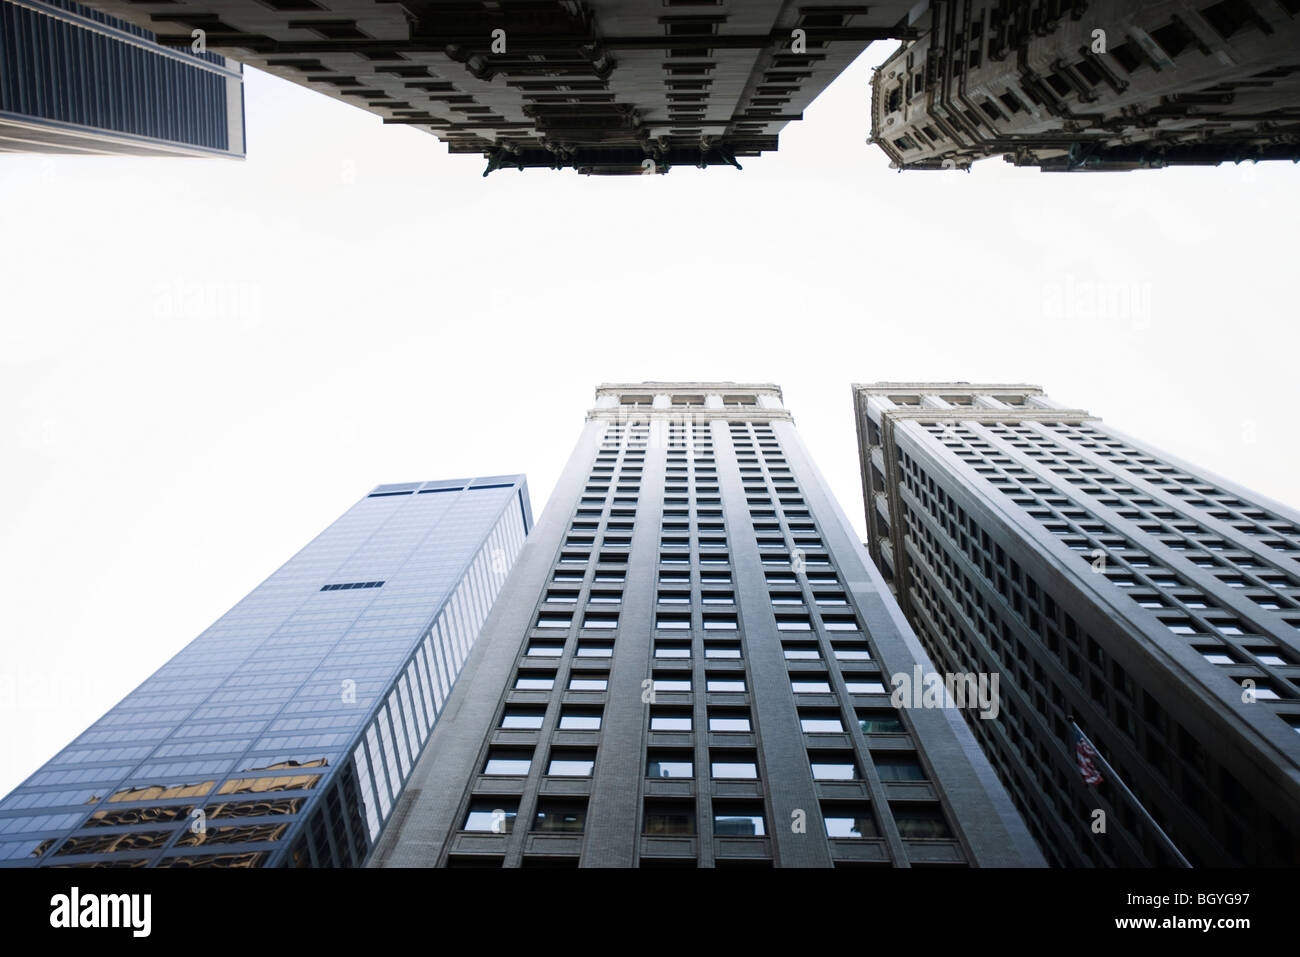 Skyscrapers side by side, low angle view Stock Photo